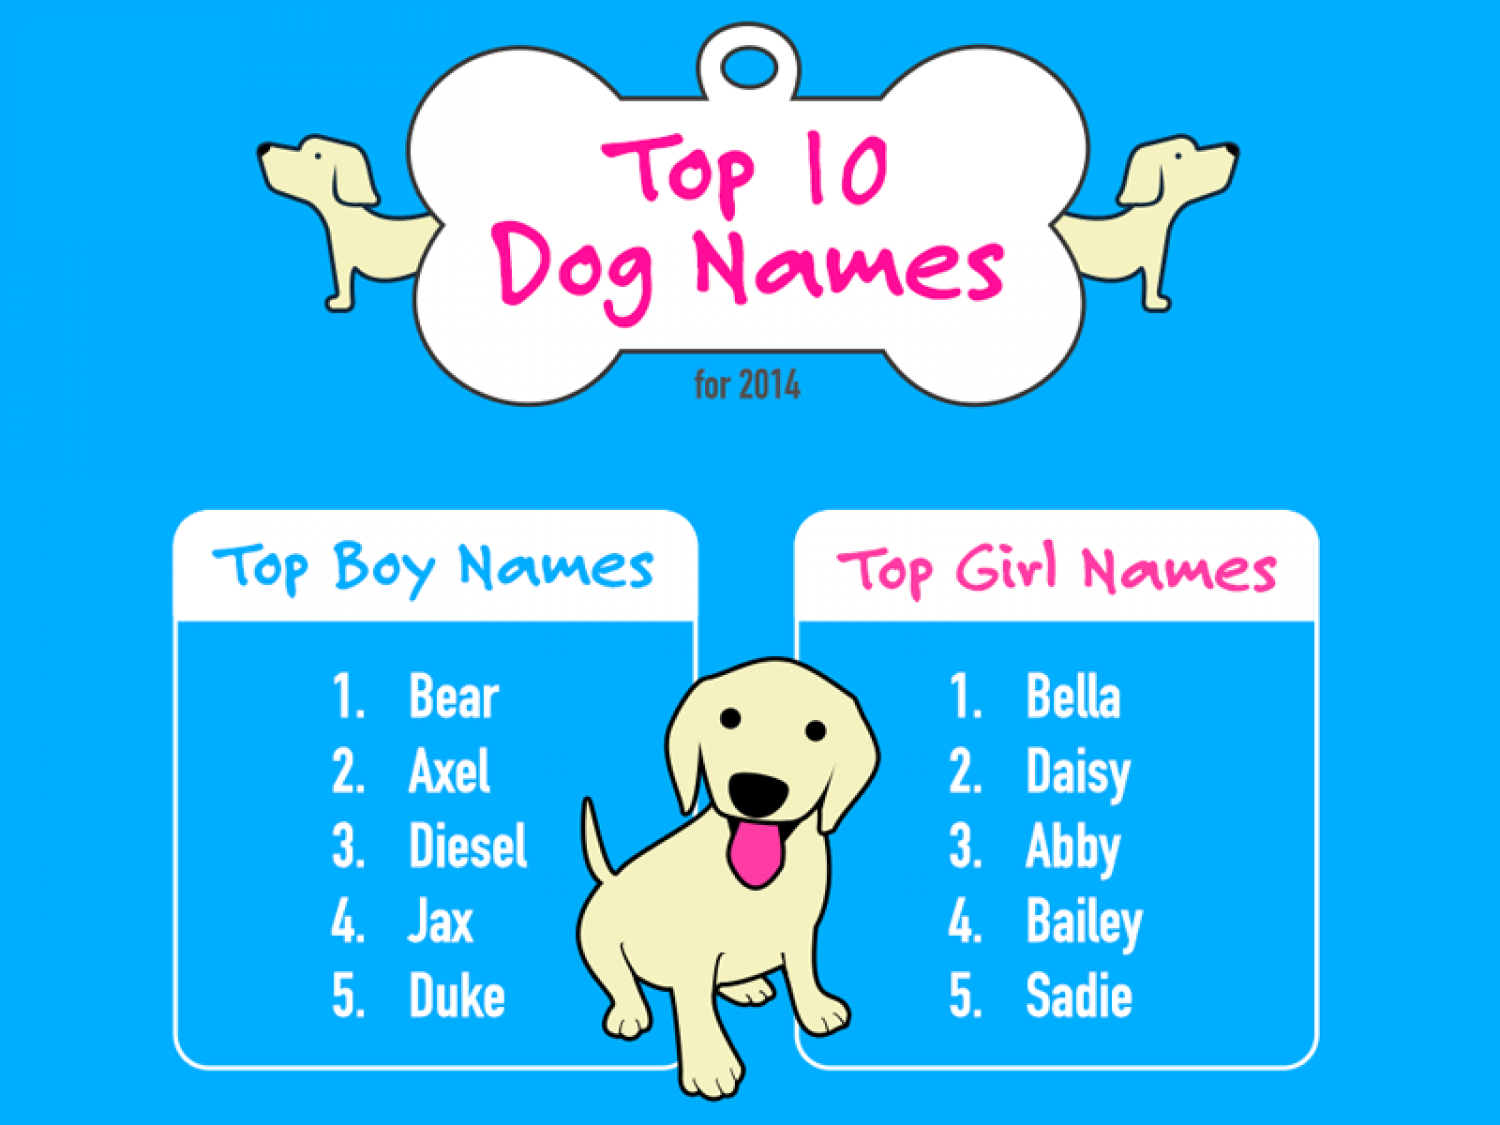 Top 10 Dog Names for 2014 Infographic